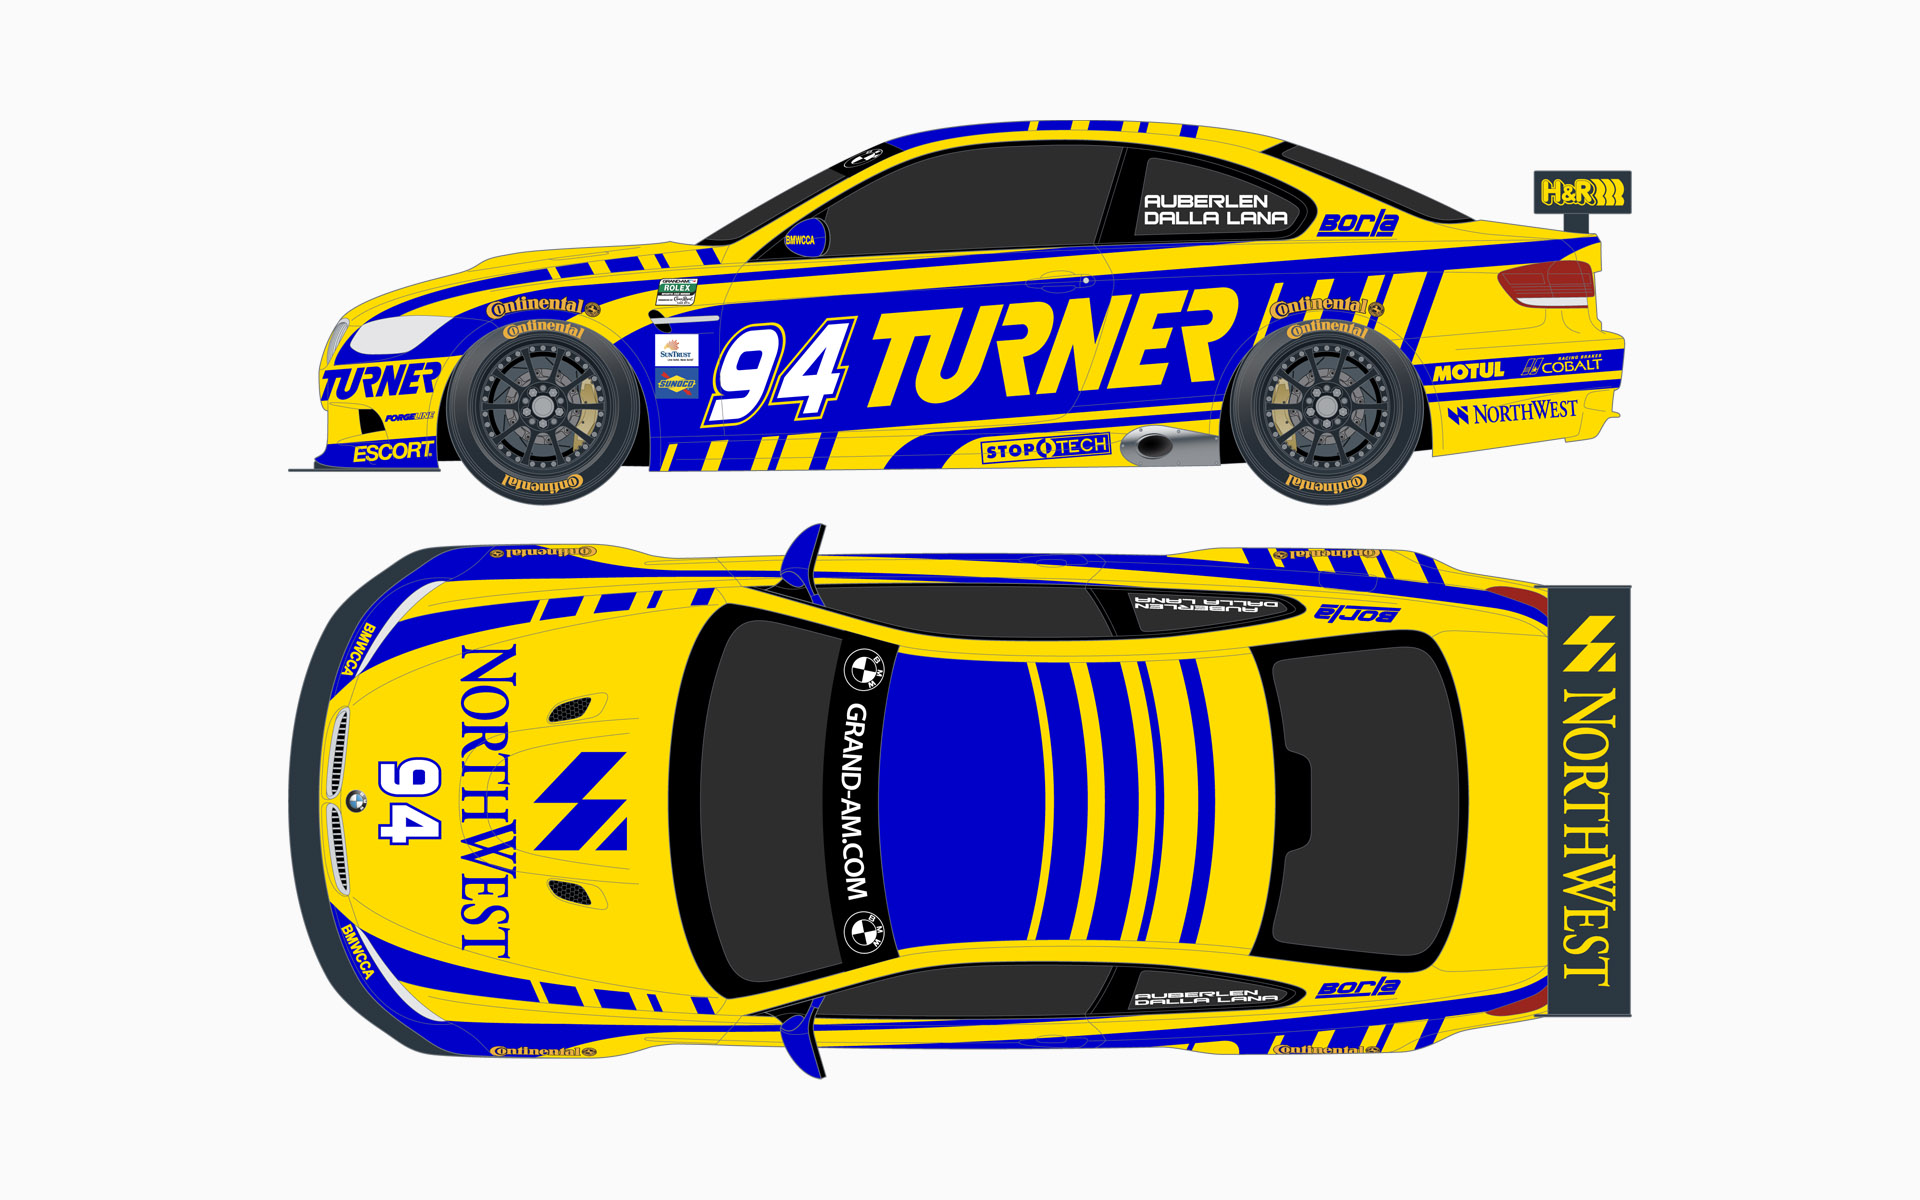 2010 Turner Motorsport BMW M3 GT Livery Elevations